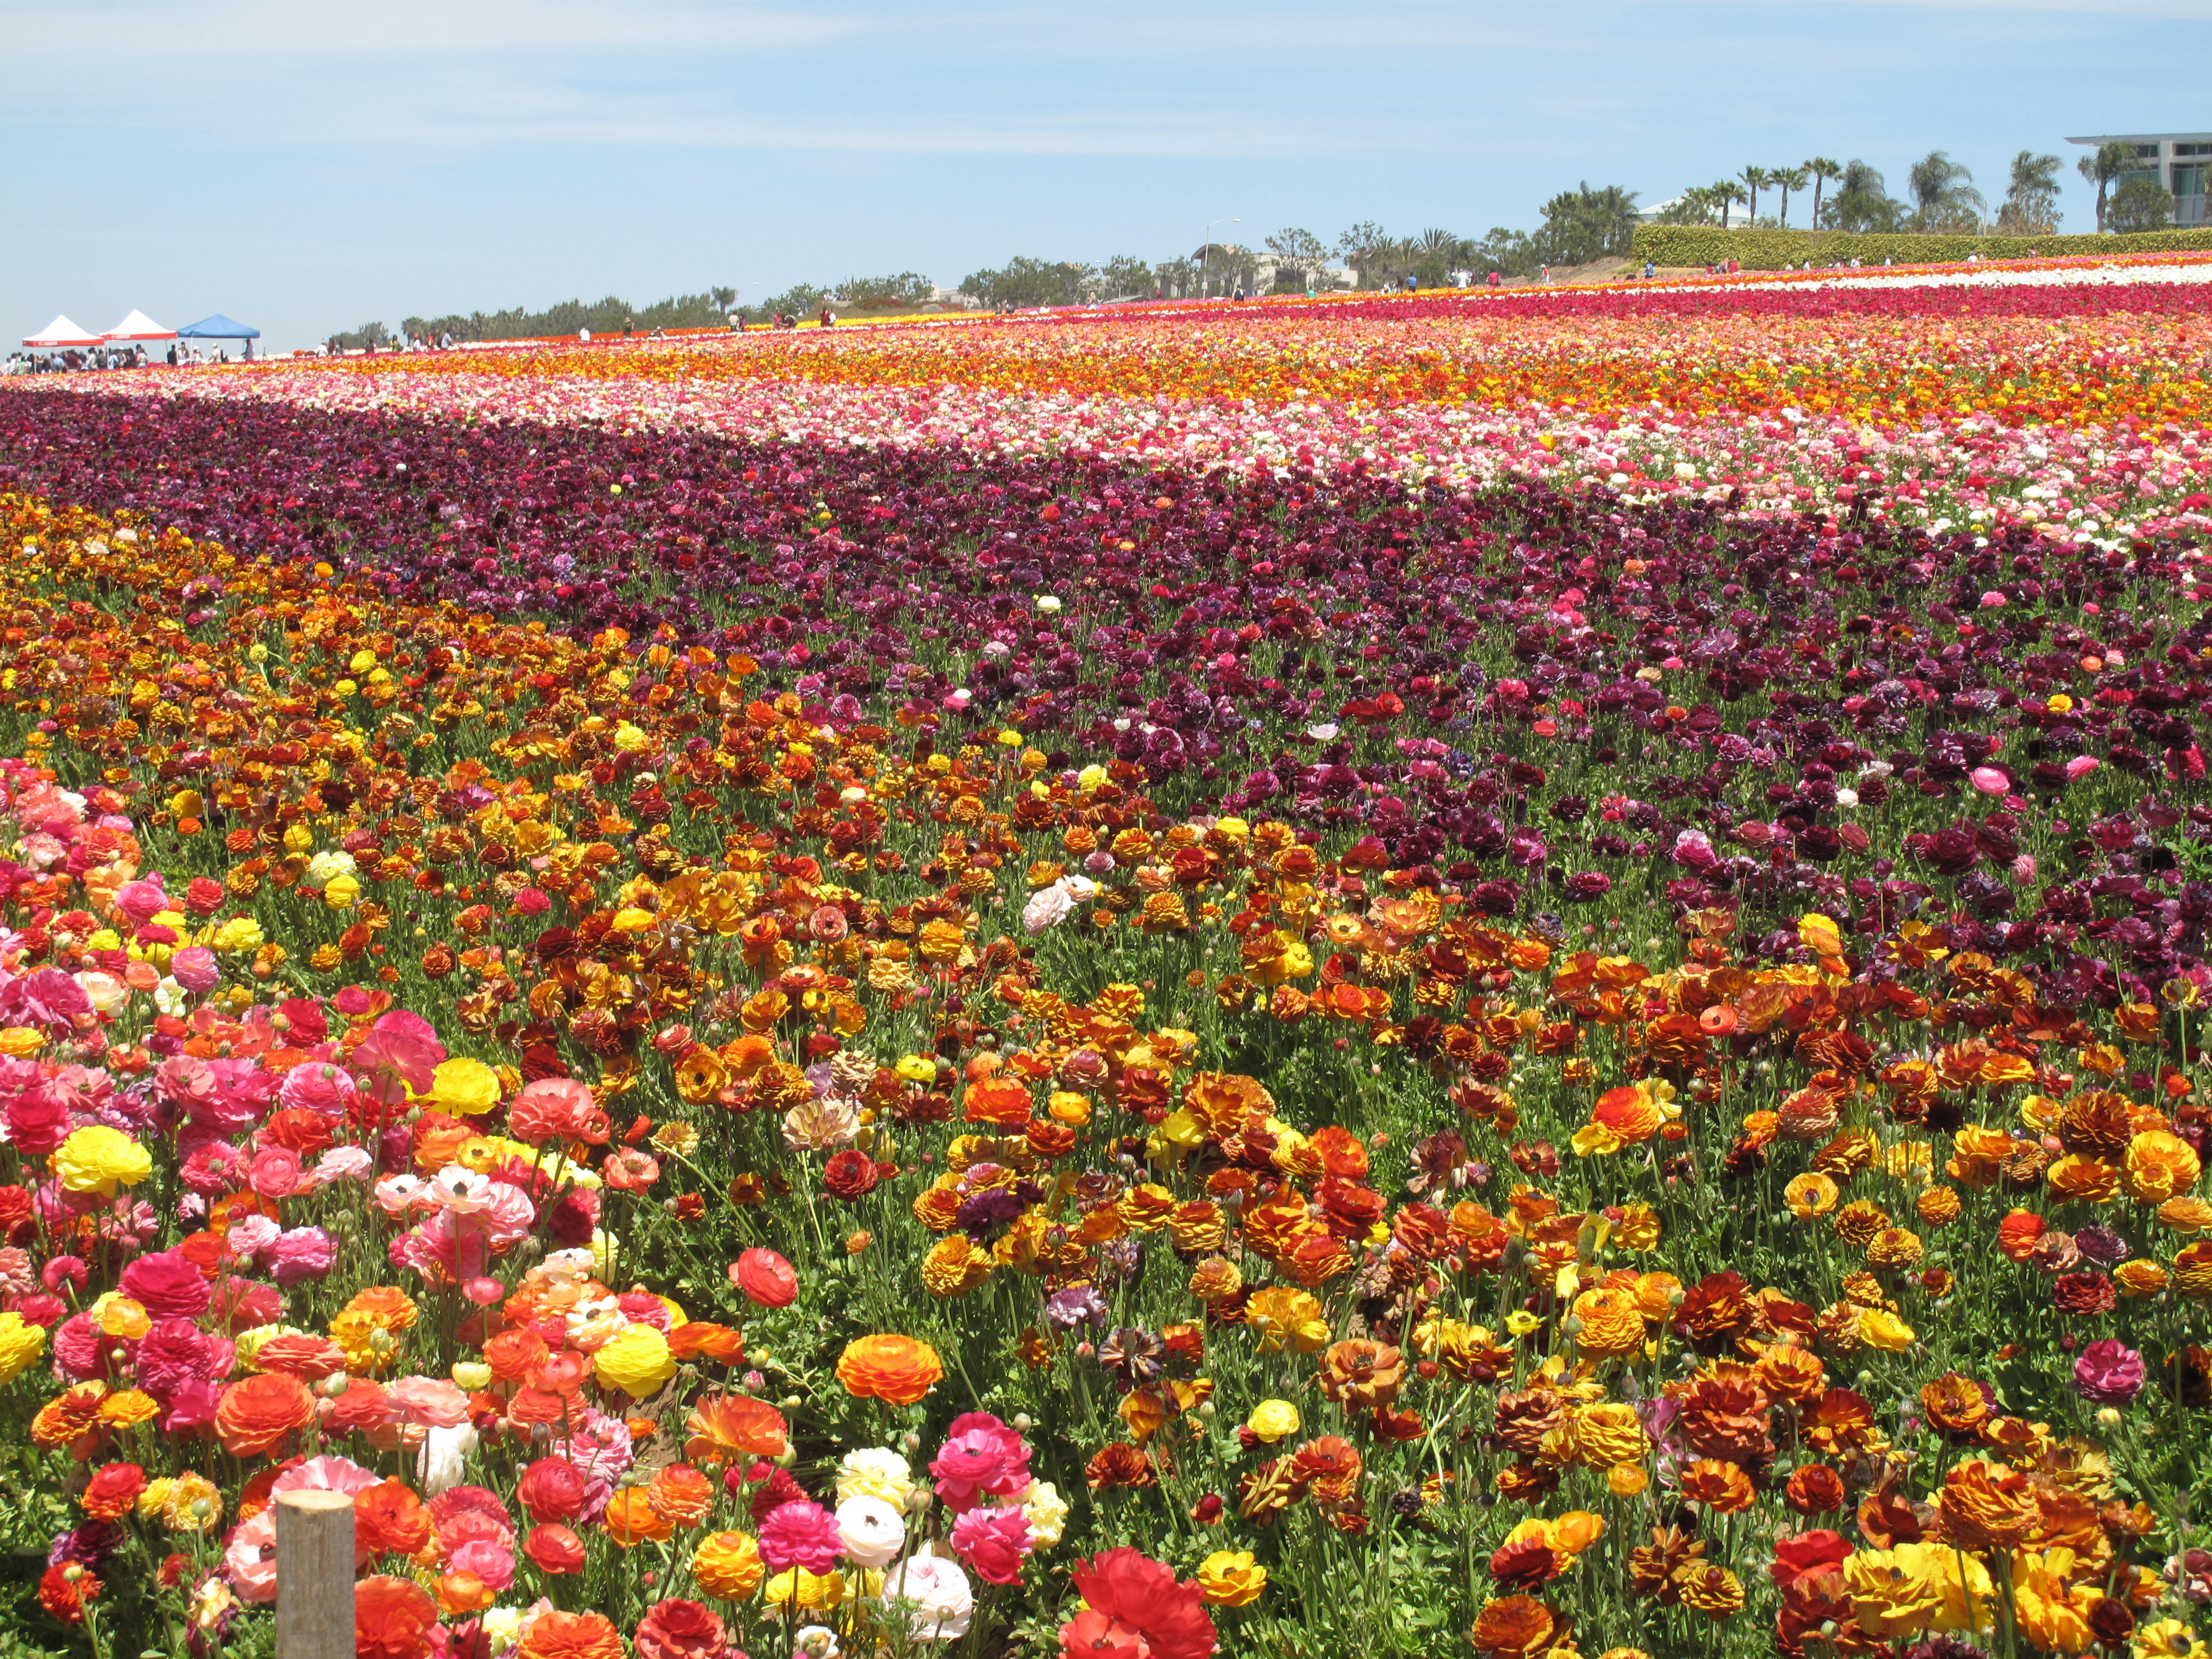 The Flower Fields Are Ablaze With The Beauty of Color